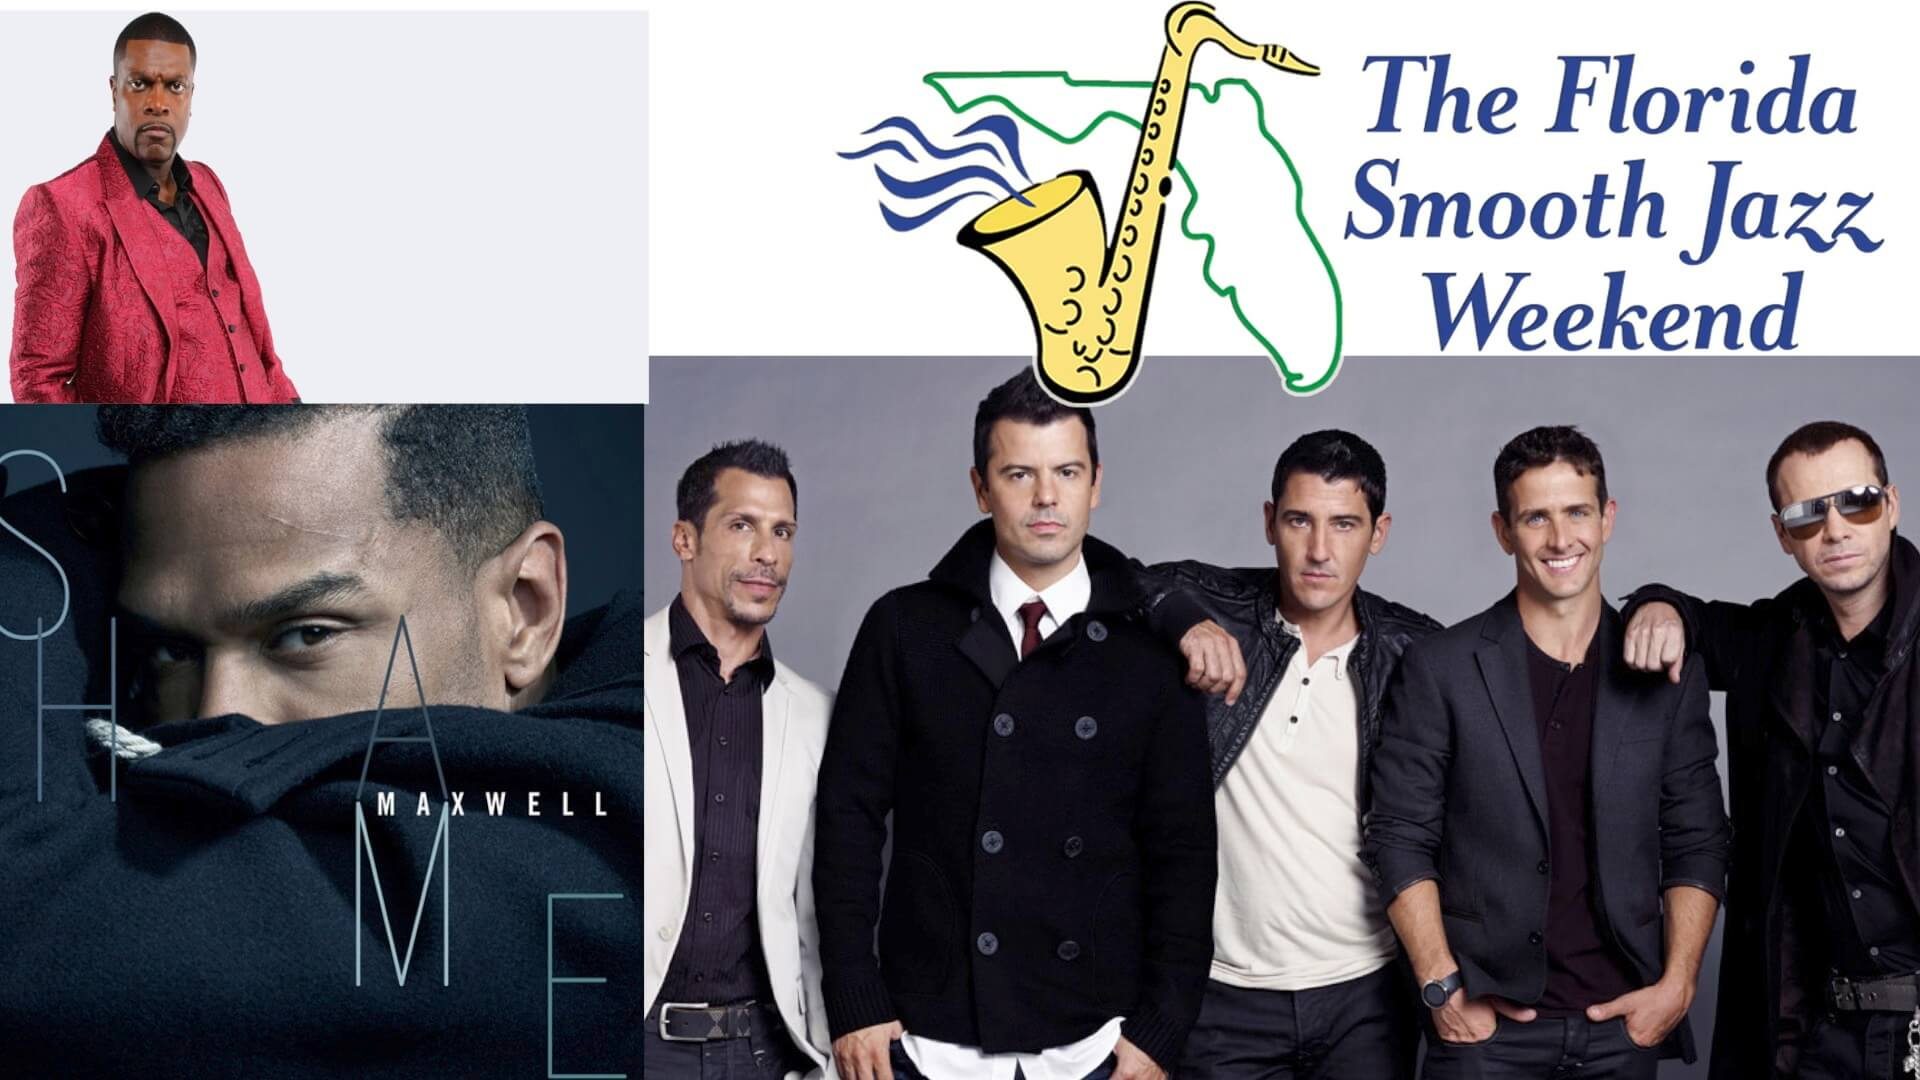 Latest R&B News and Smooth Jazz Update October 8th